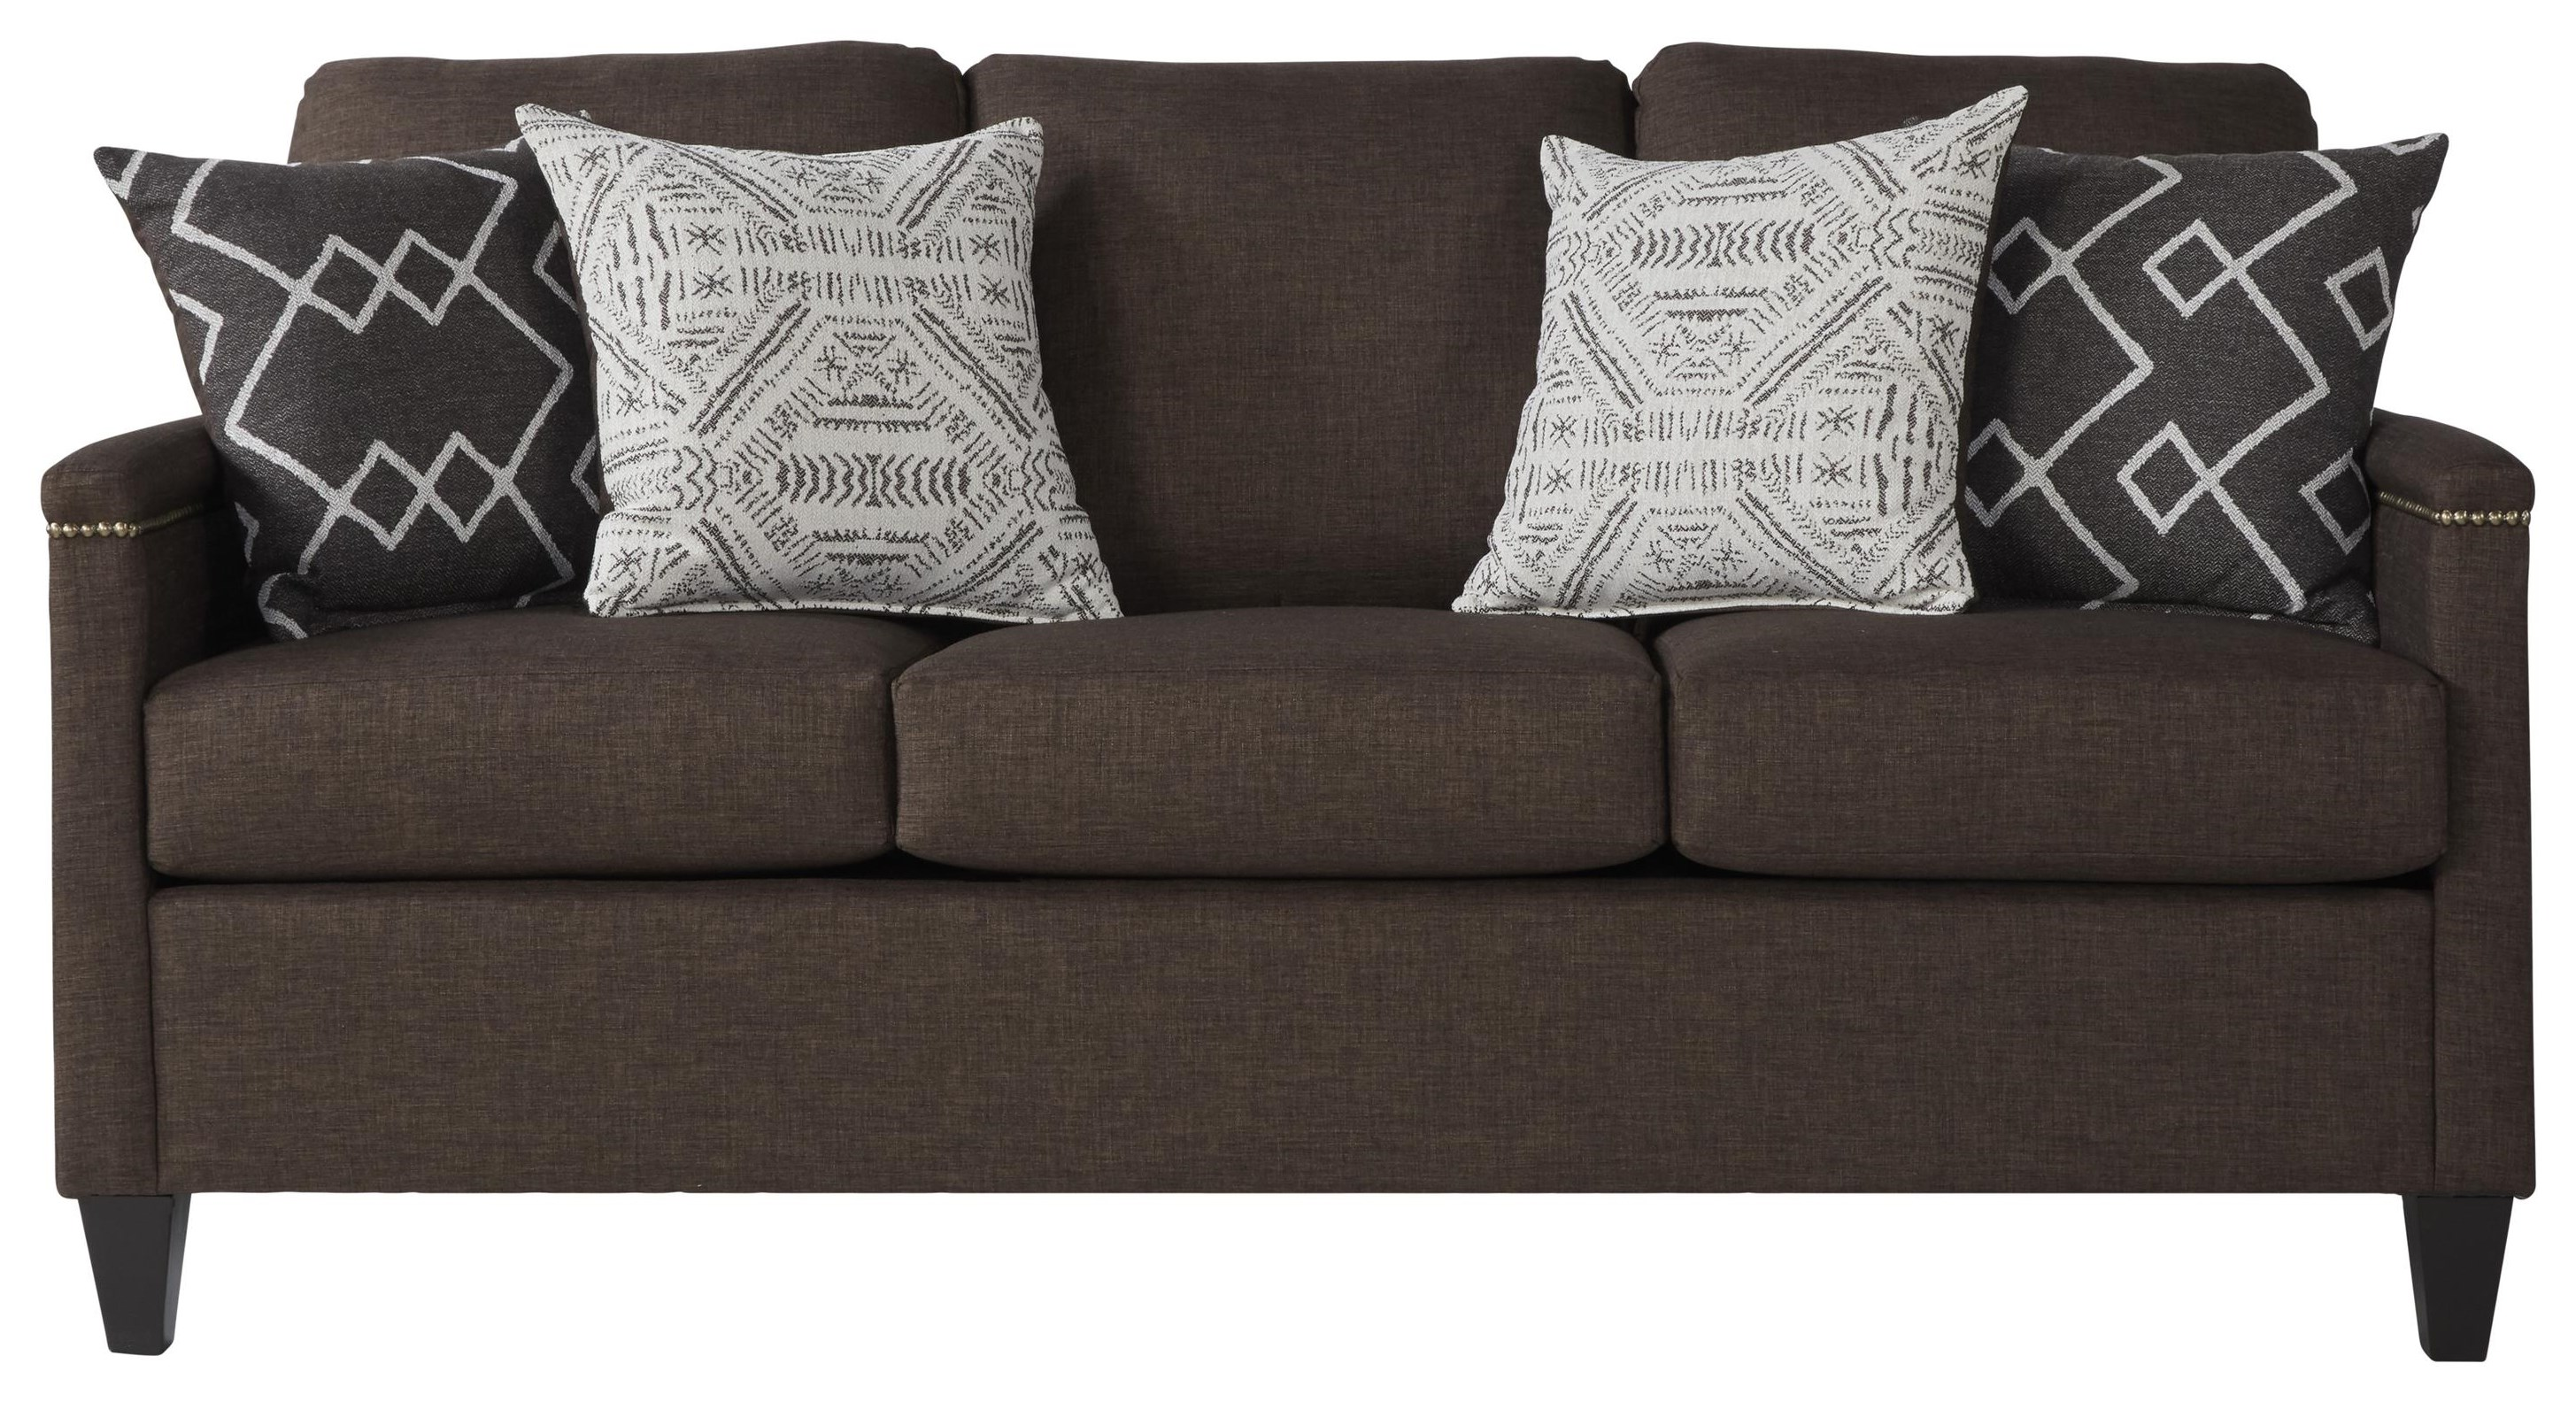 25 Casual Sofa by Serta Upholstery by Hughes Furniture at VanDrie Home Furnishings